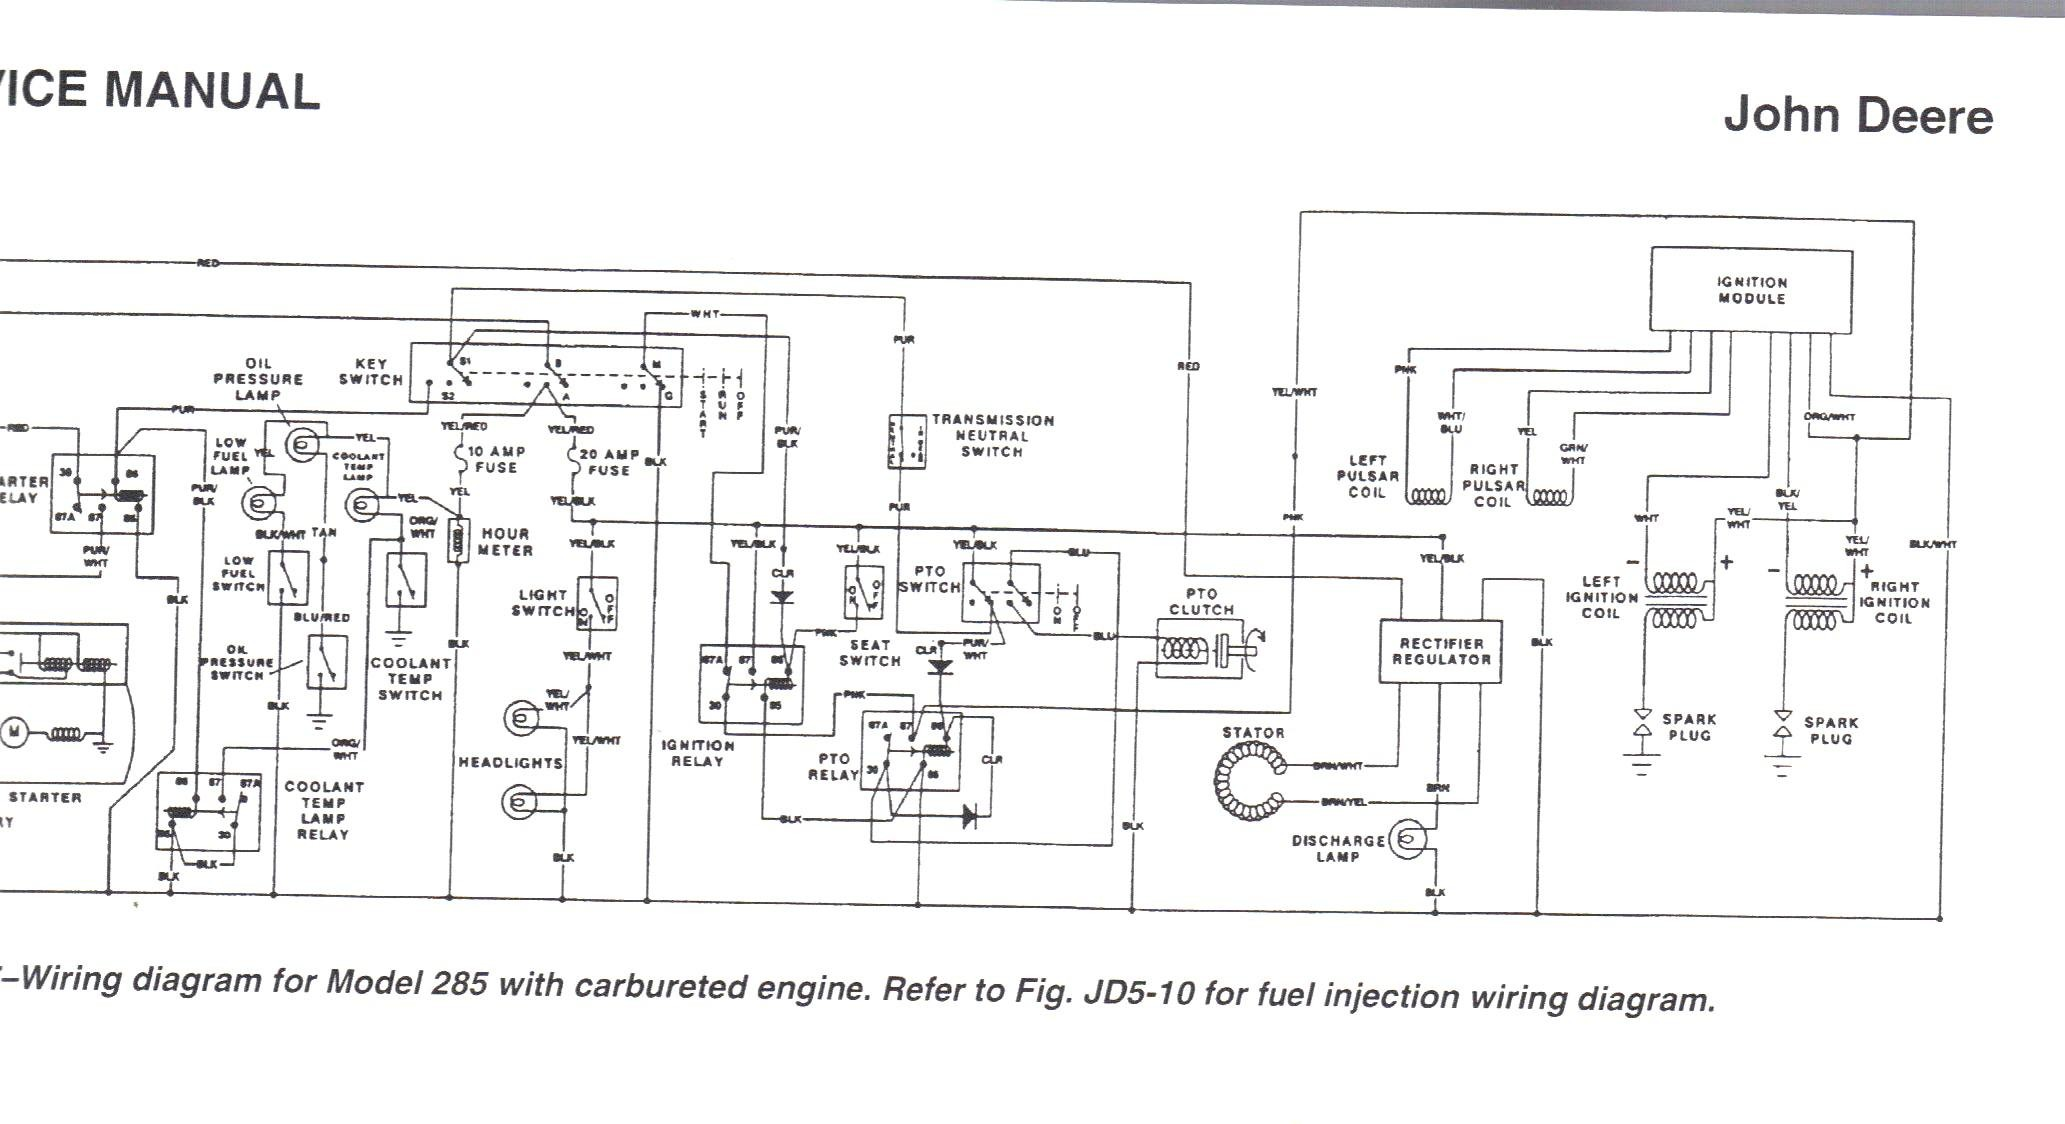 John Deere X500 Wiring Diagram from static-assets.imageservice.cloud